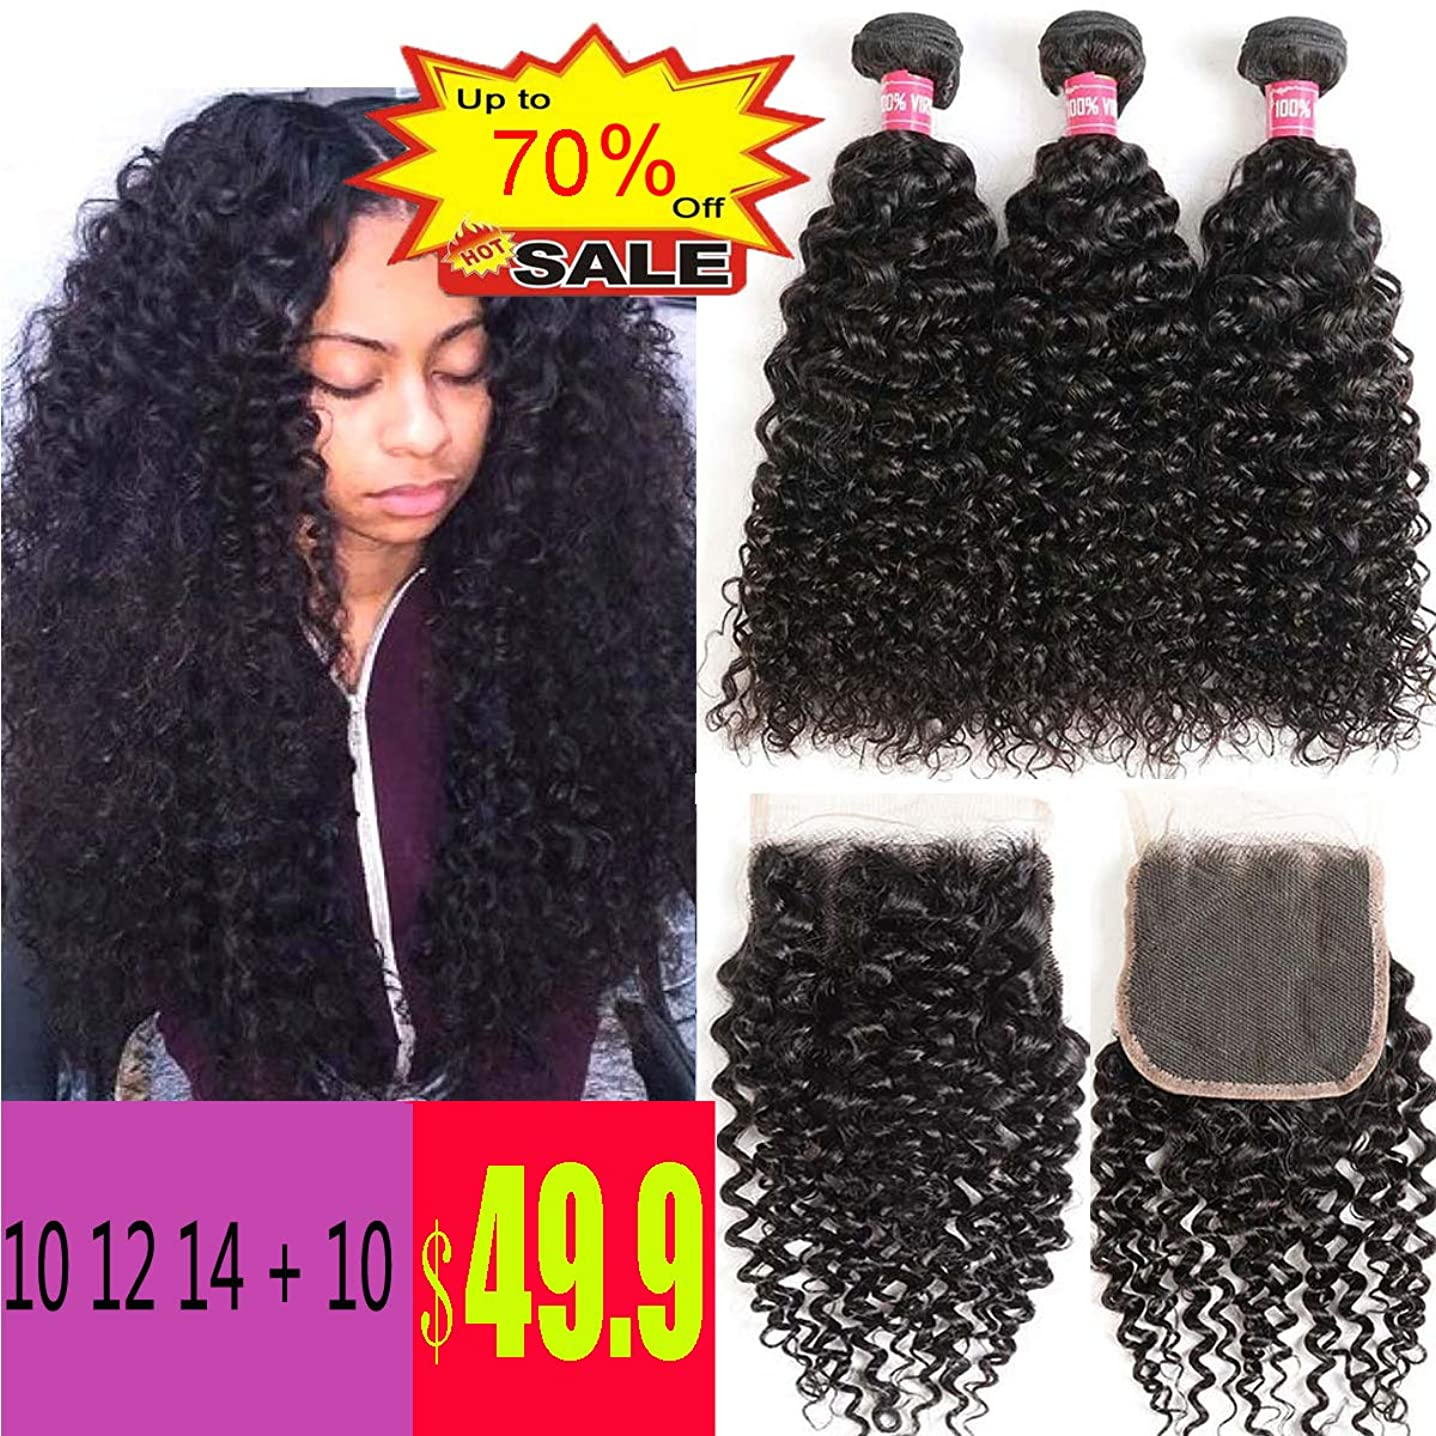 WENYU Brazilian Virgin Kinkly Curly Hair 3 Bundles with Lace Closure Brazilian Kinky Curly Human Hair Extensions Curly Weave Bundles with 4 x 4 Lace Closure Natural Black Color(10 12 14+10Free Part)